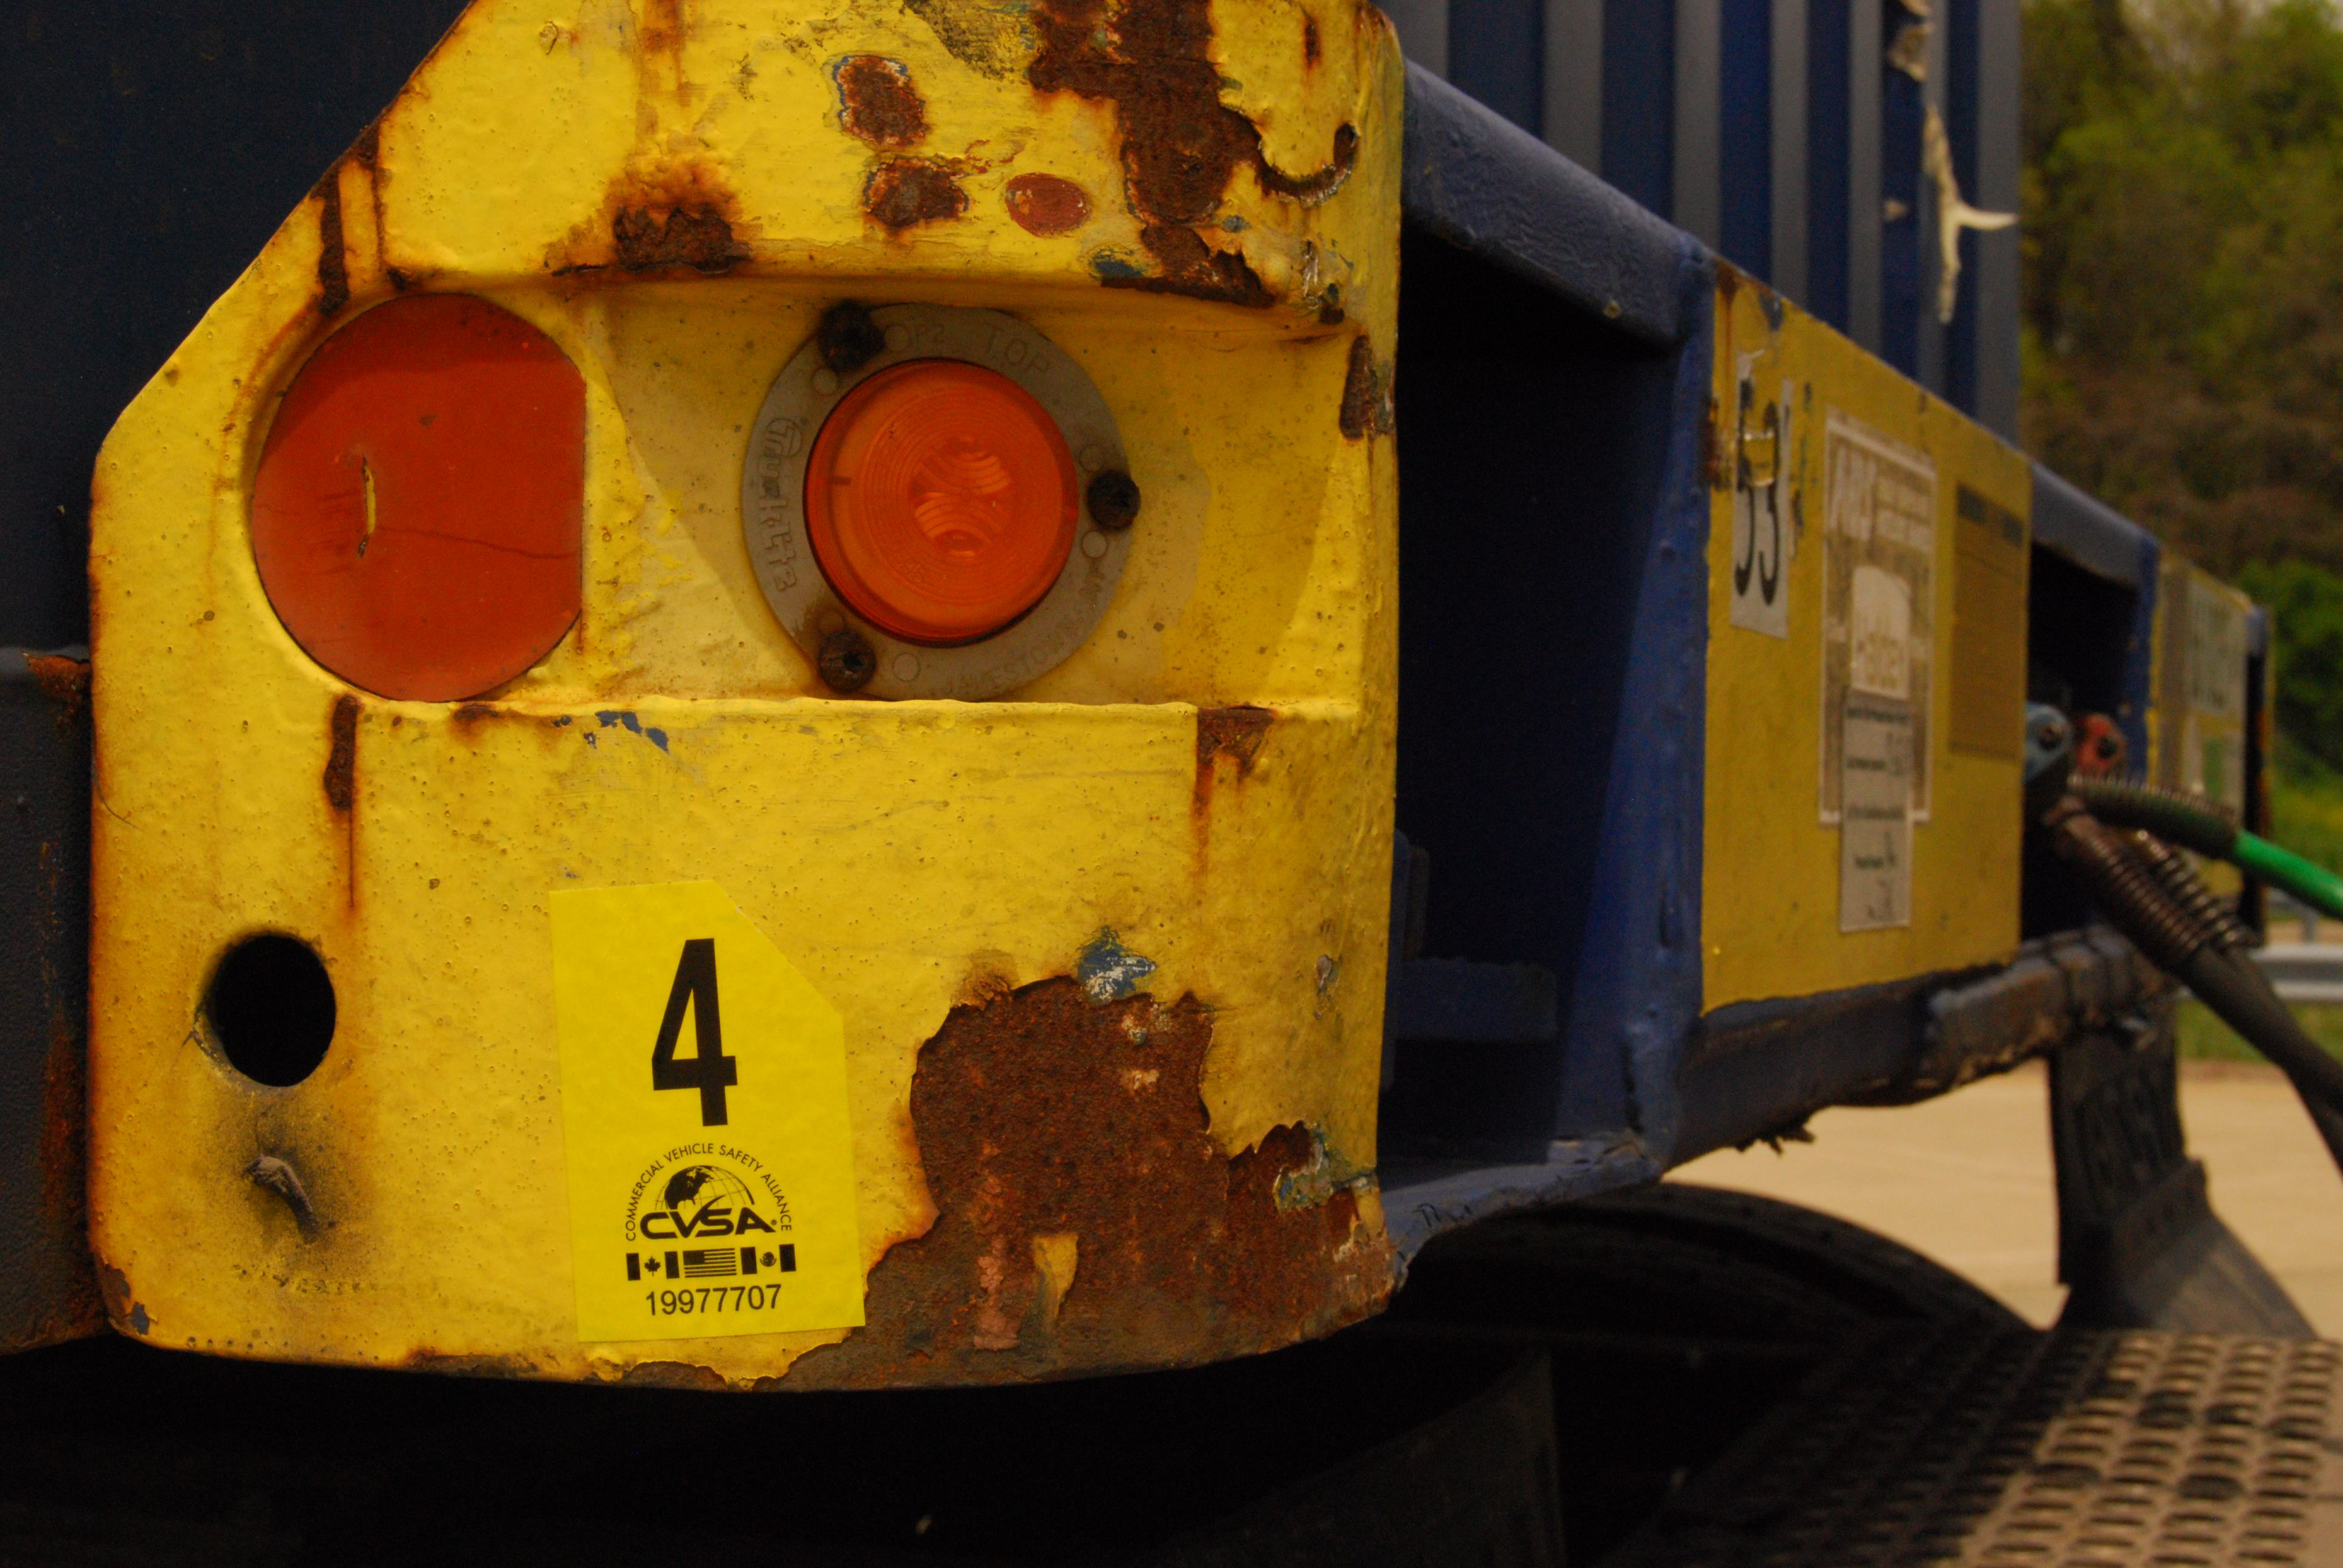 Container chassis clean inspection sticker